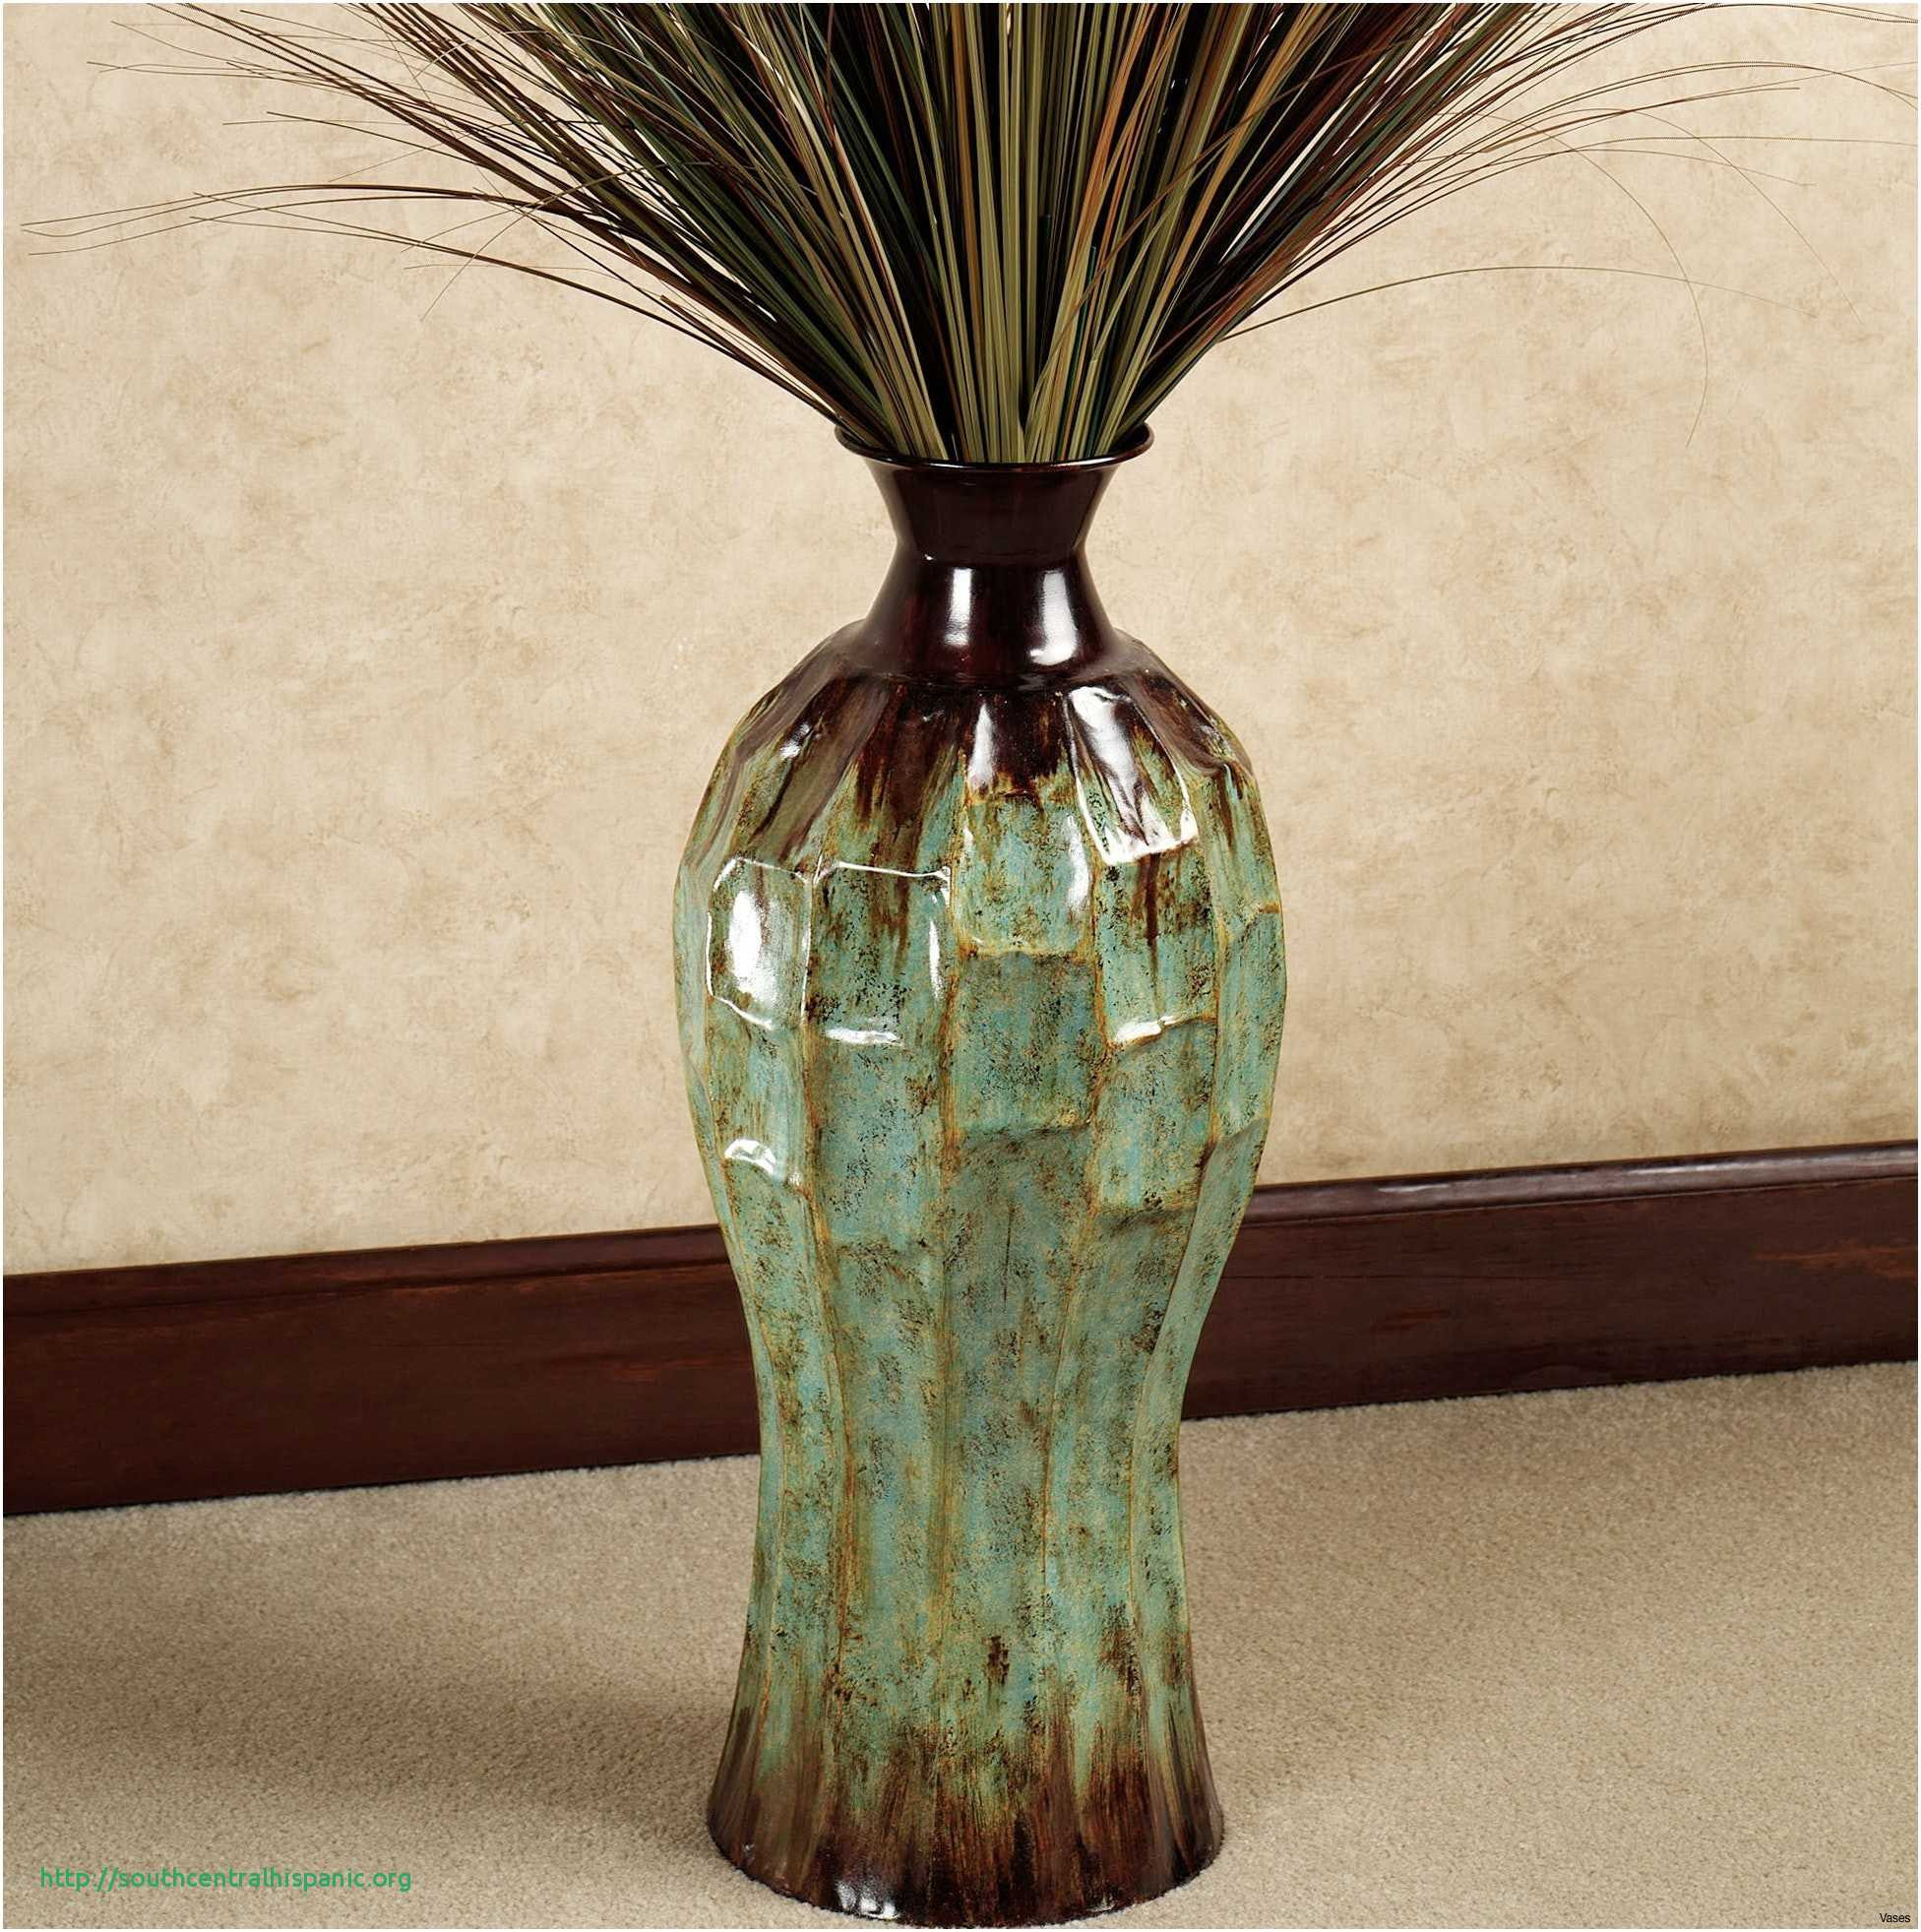 Extra Large Decorative Floor Vases Of 22 Impressionnant What to Put In A Large Floor Vase Ideas Blog Pertaining to What to Put In A Large Floor Vase Beau Home Design Tall Decorative Floor Vases Inspirational